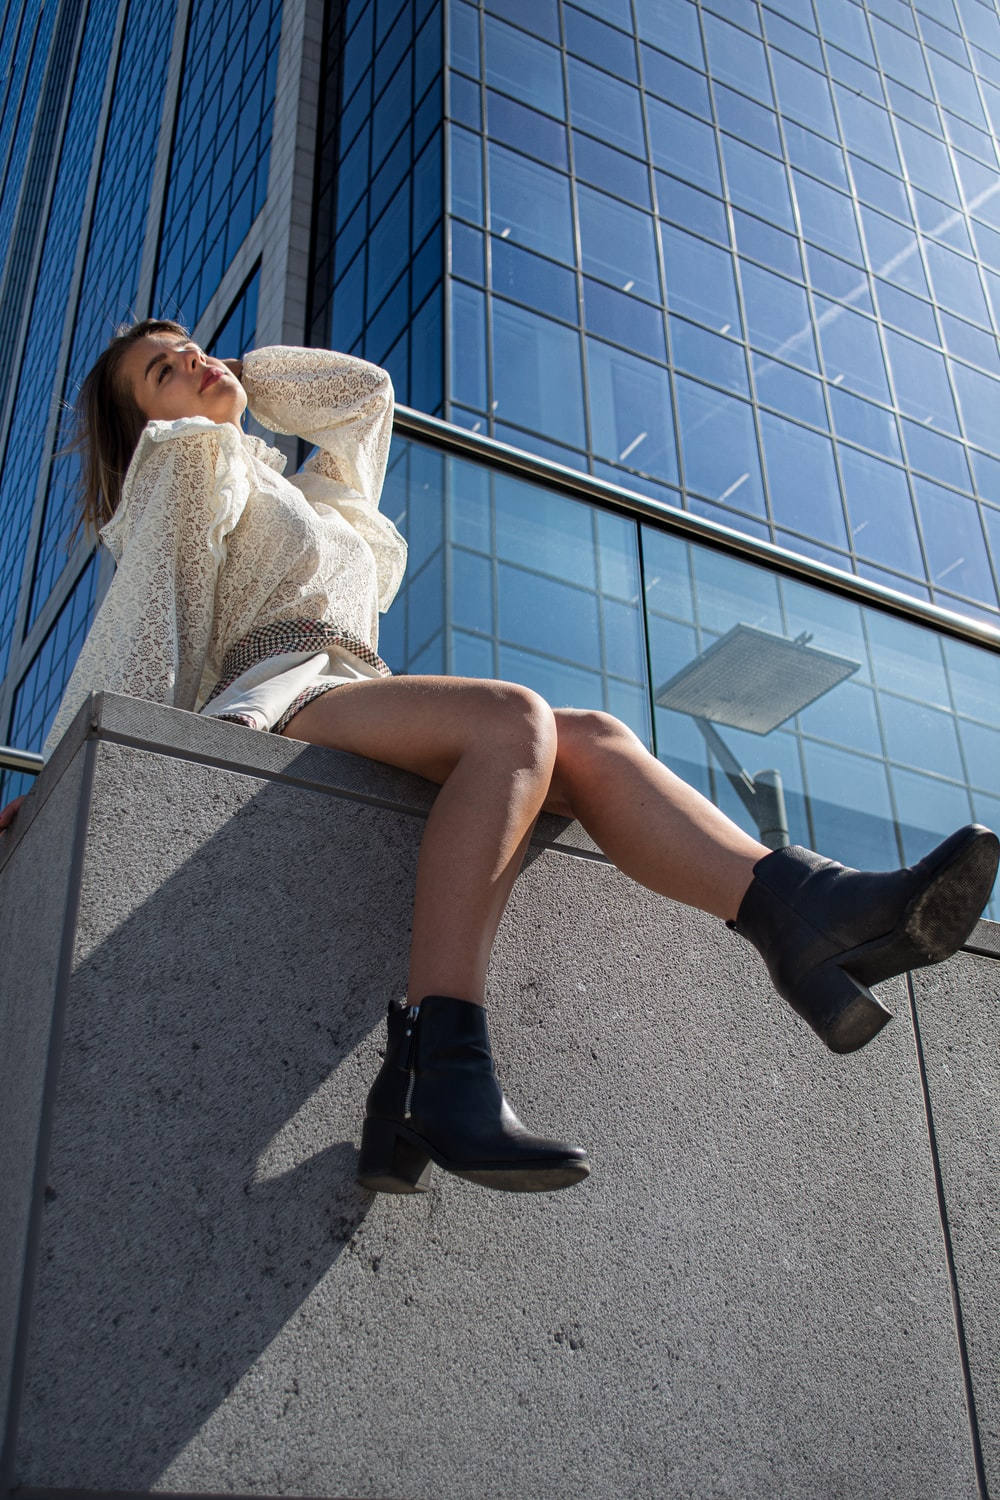 woman sitting beside concrete building during daytime close-up photography